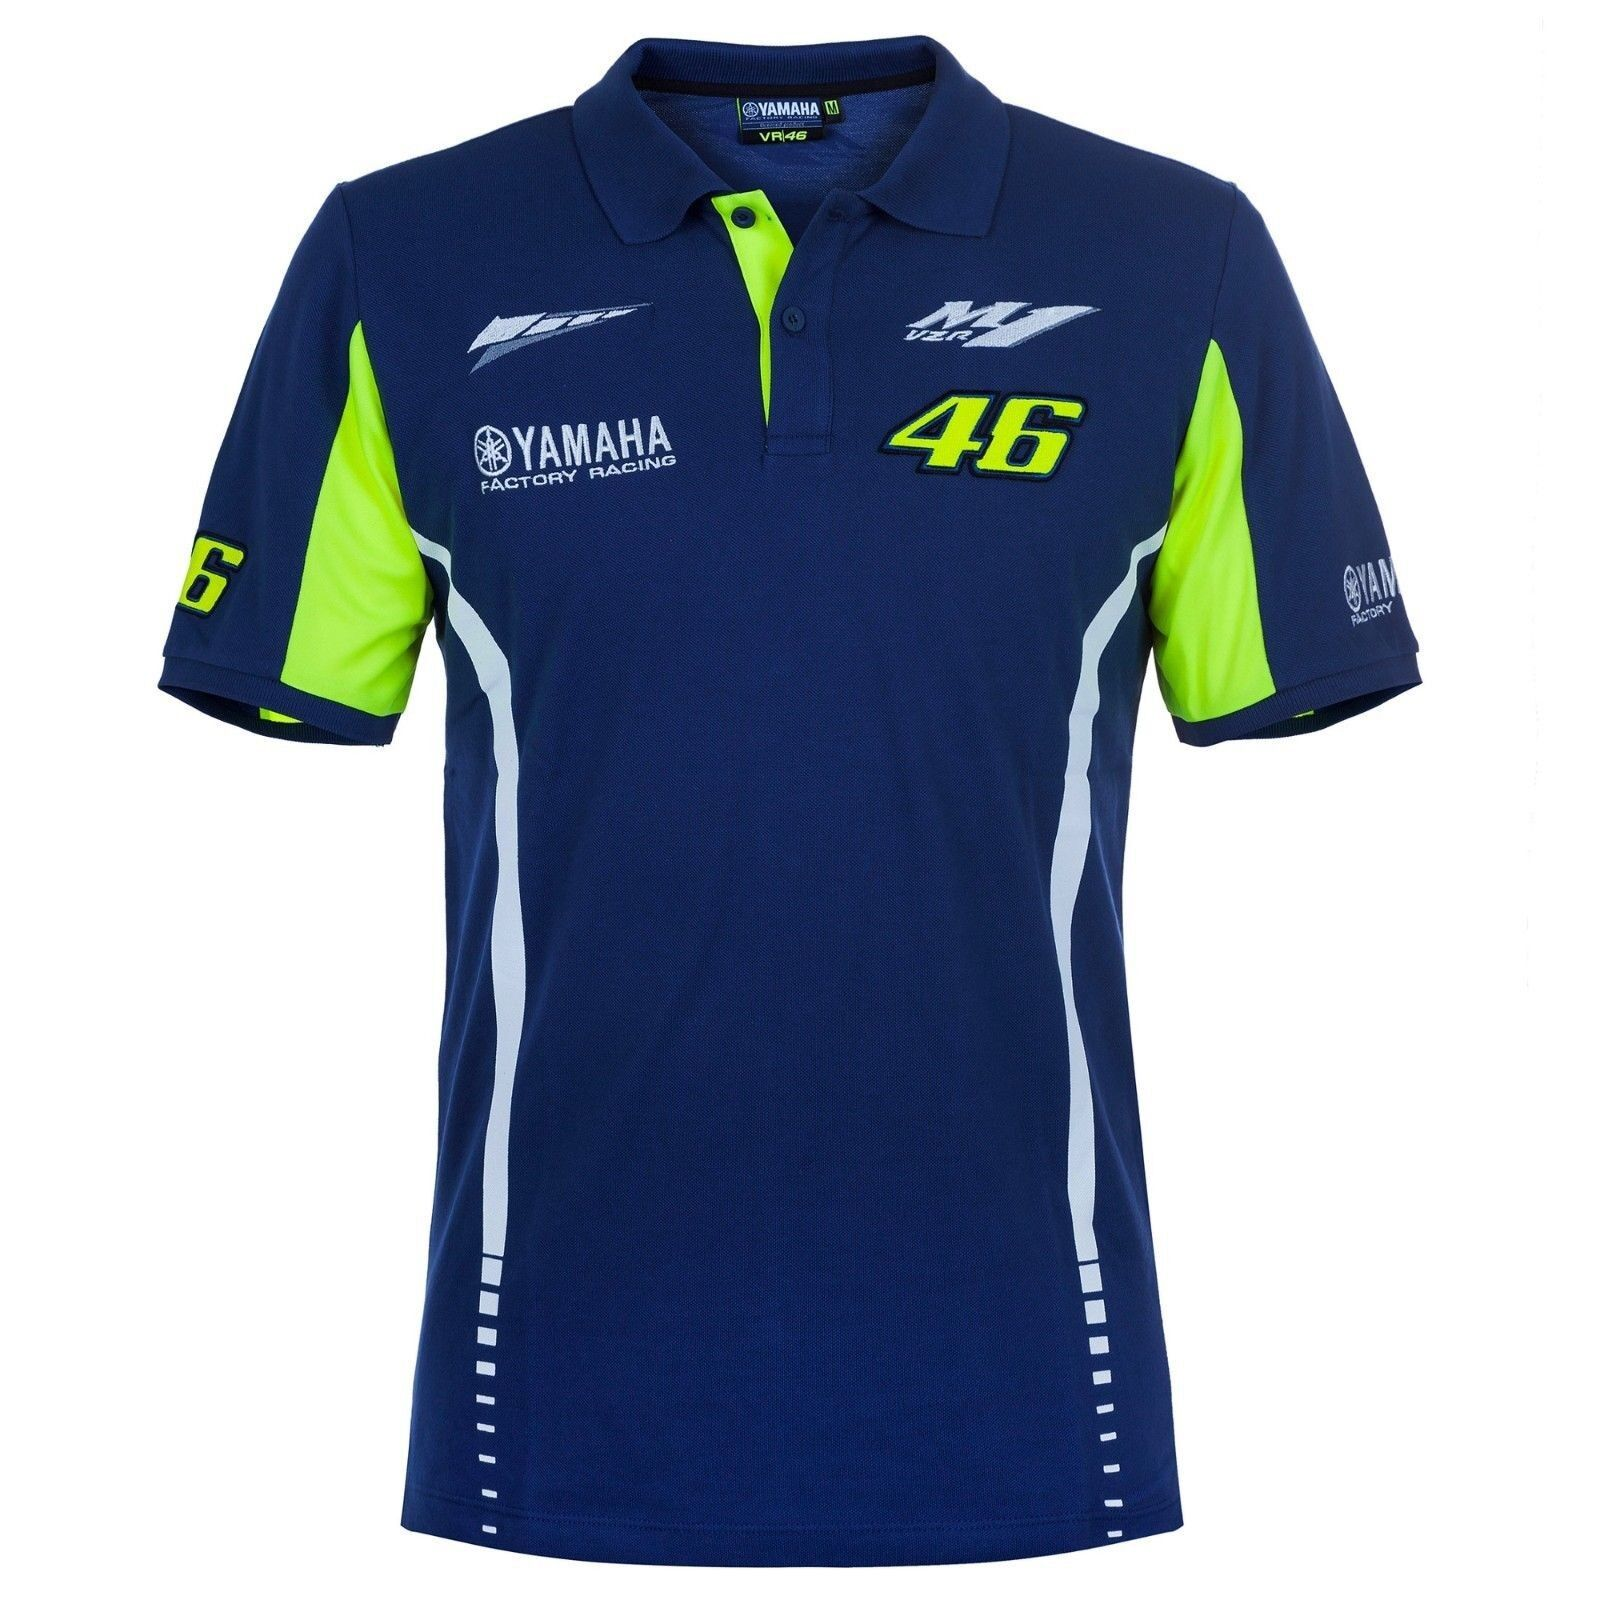 New Official Valentino Rossi Yamaha Dual Polo Shirt